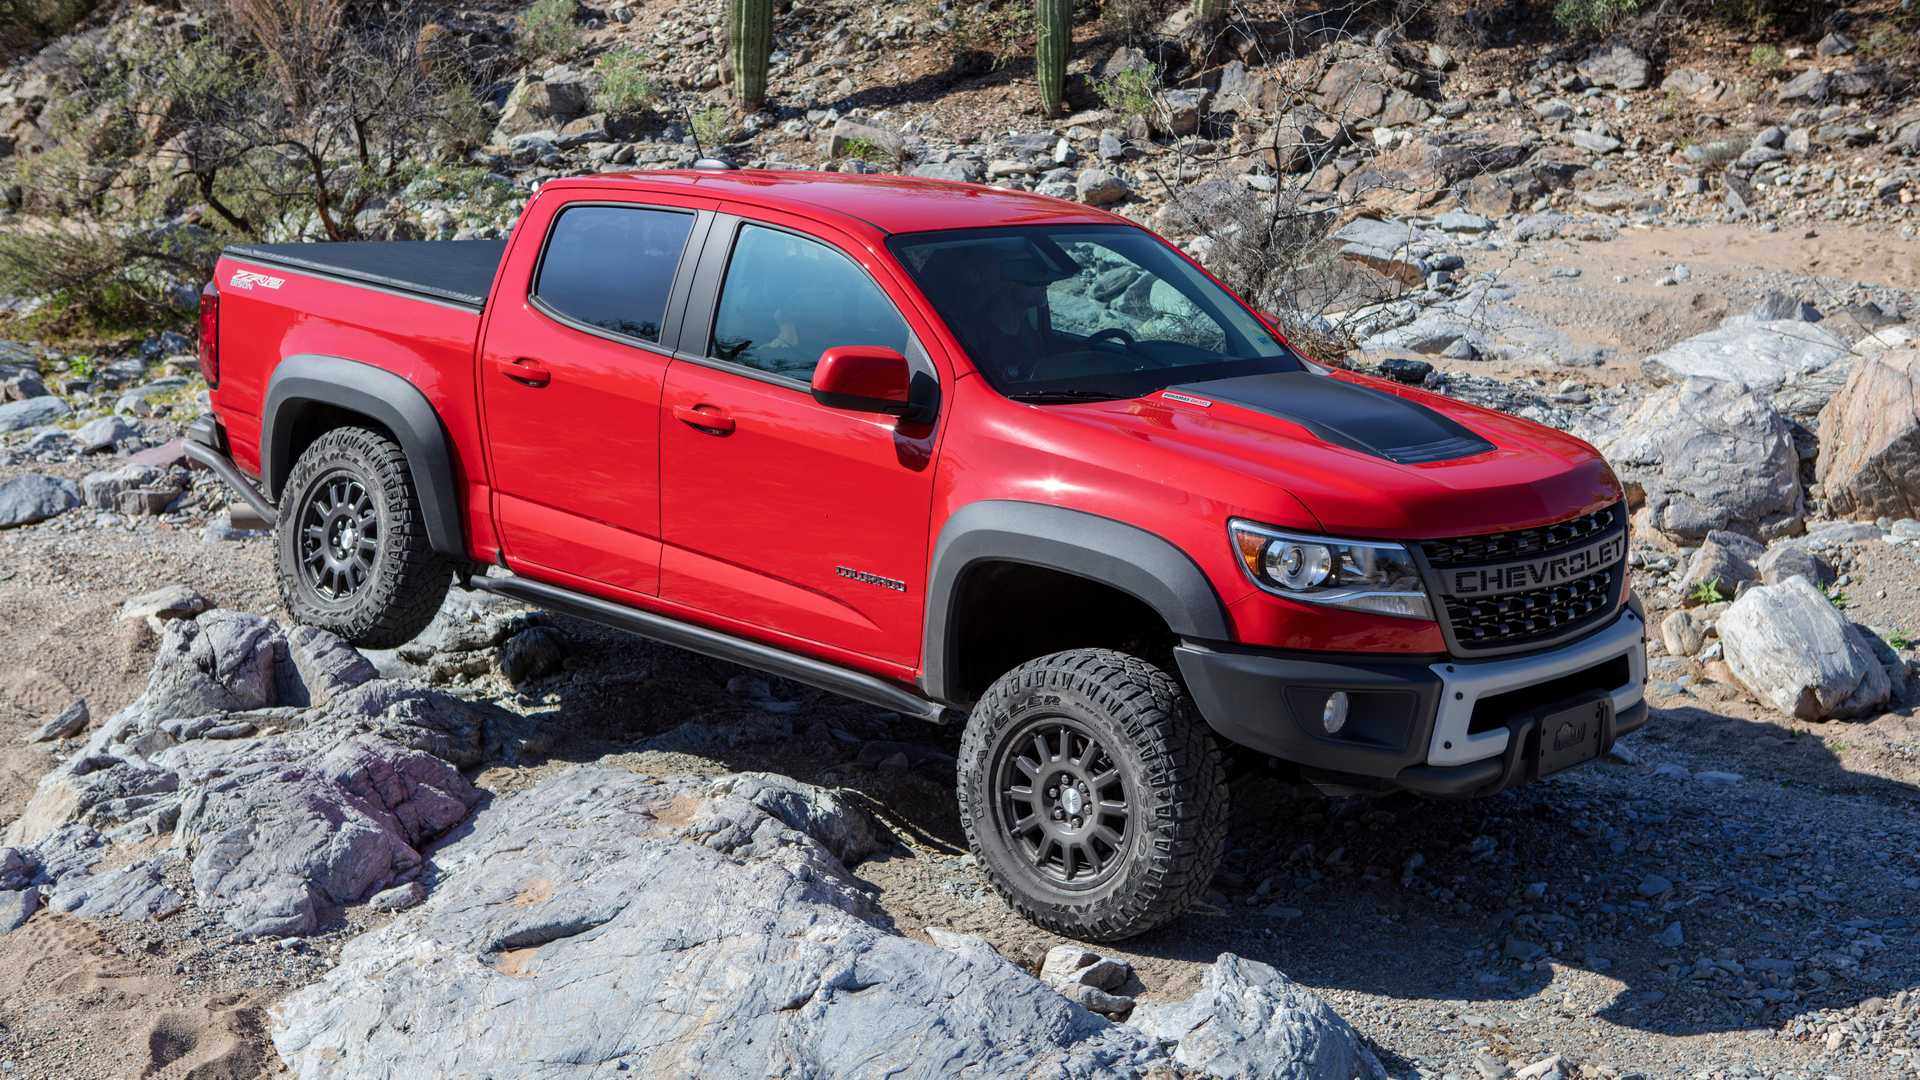 Chevy Colorado ZR2 Bison 'Plus' In The Works With More Off-Road Chops